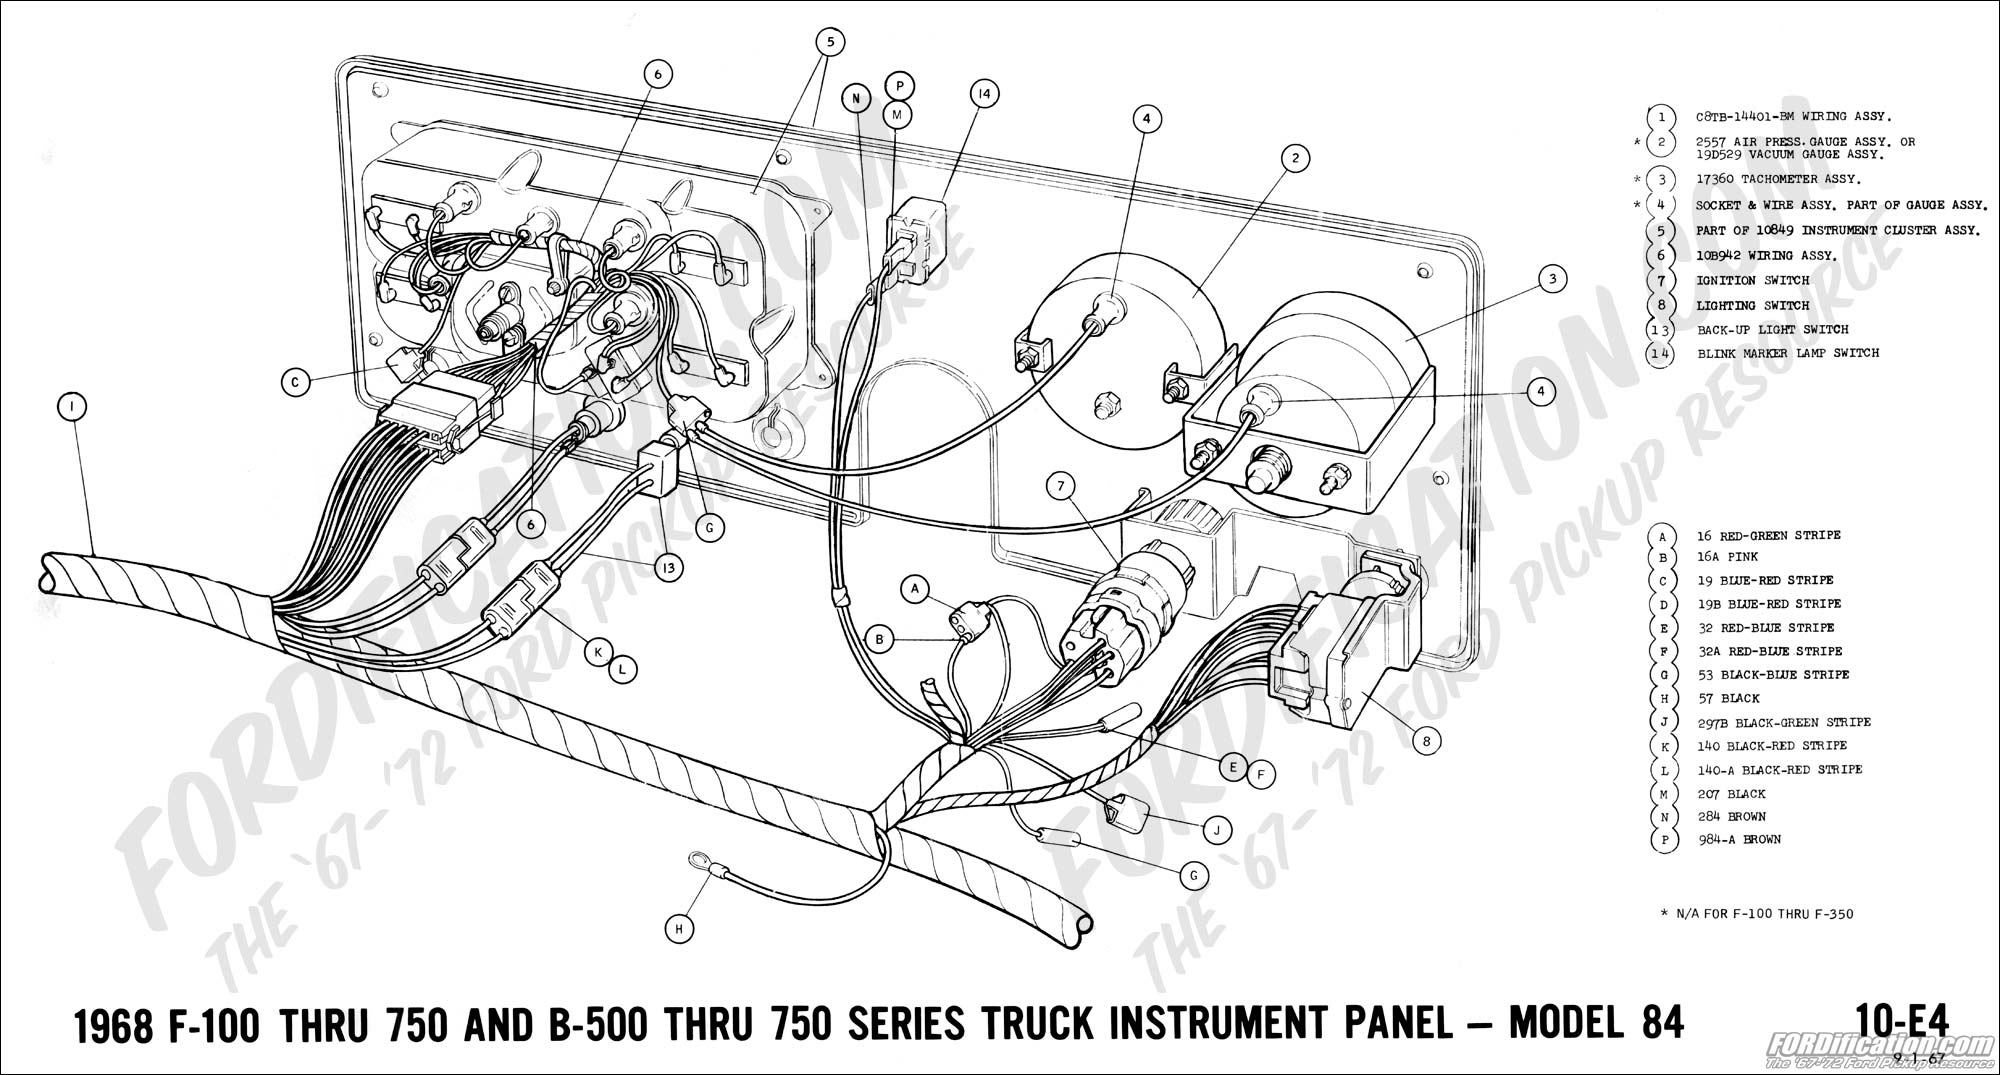 68 06 ford truck technical drawings and schematics section h wiring 1965 mustang instrument cluster wiring diagram at n-0.co